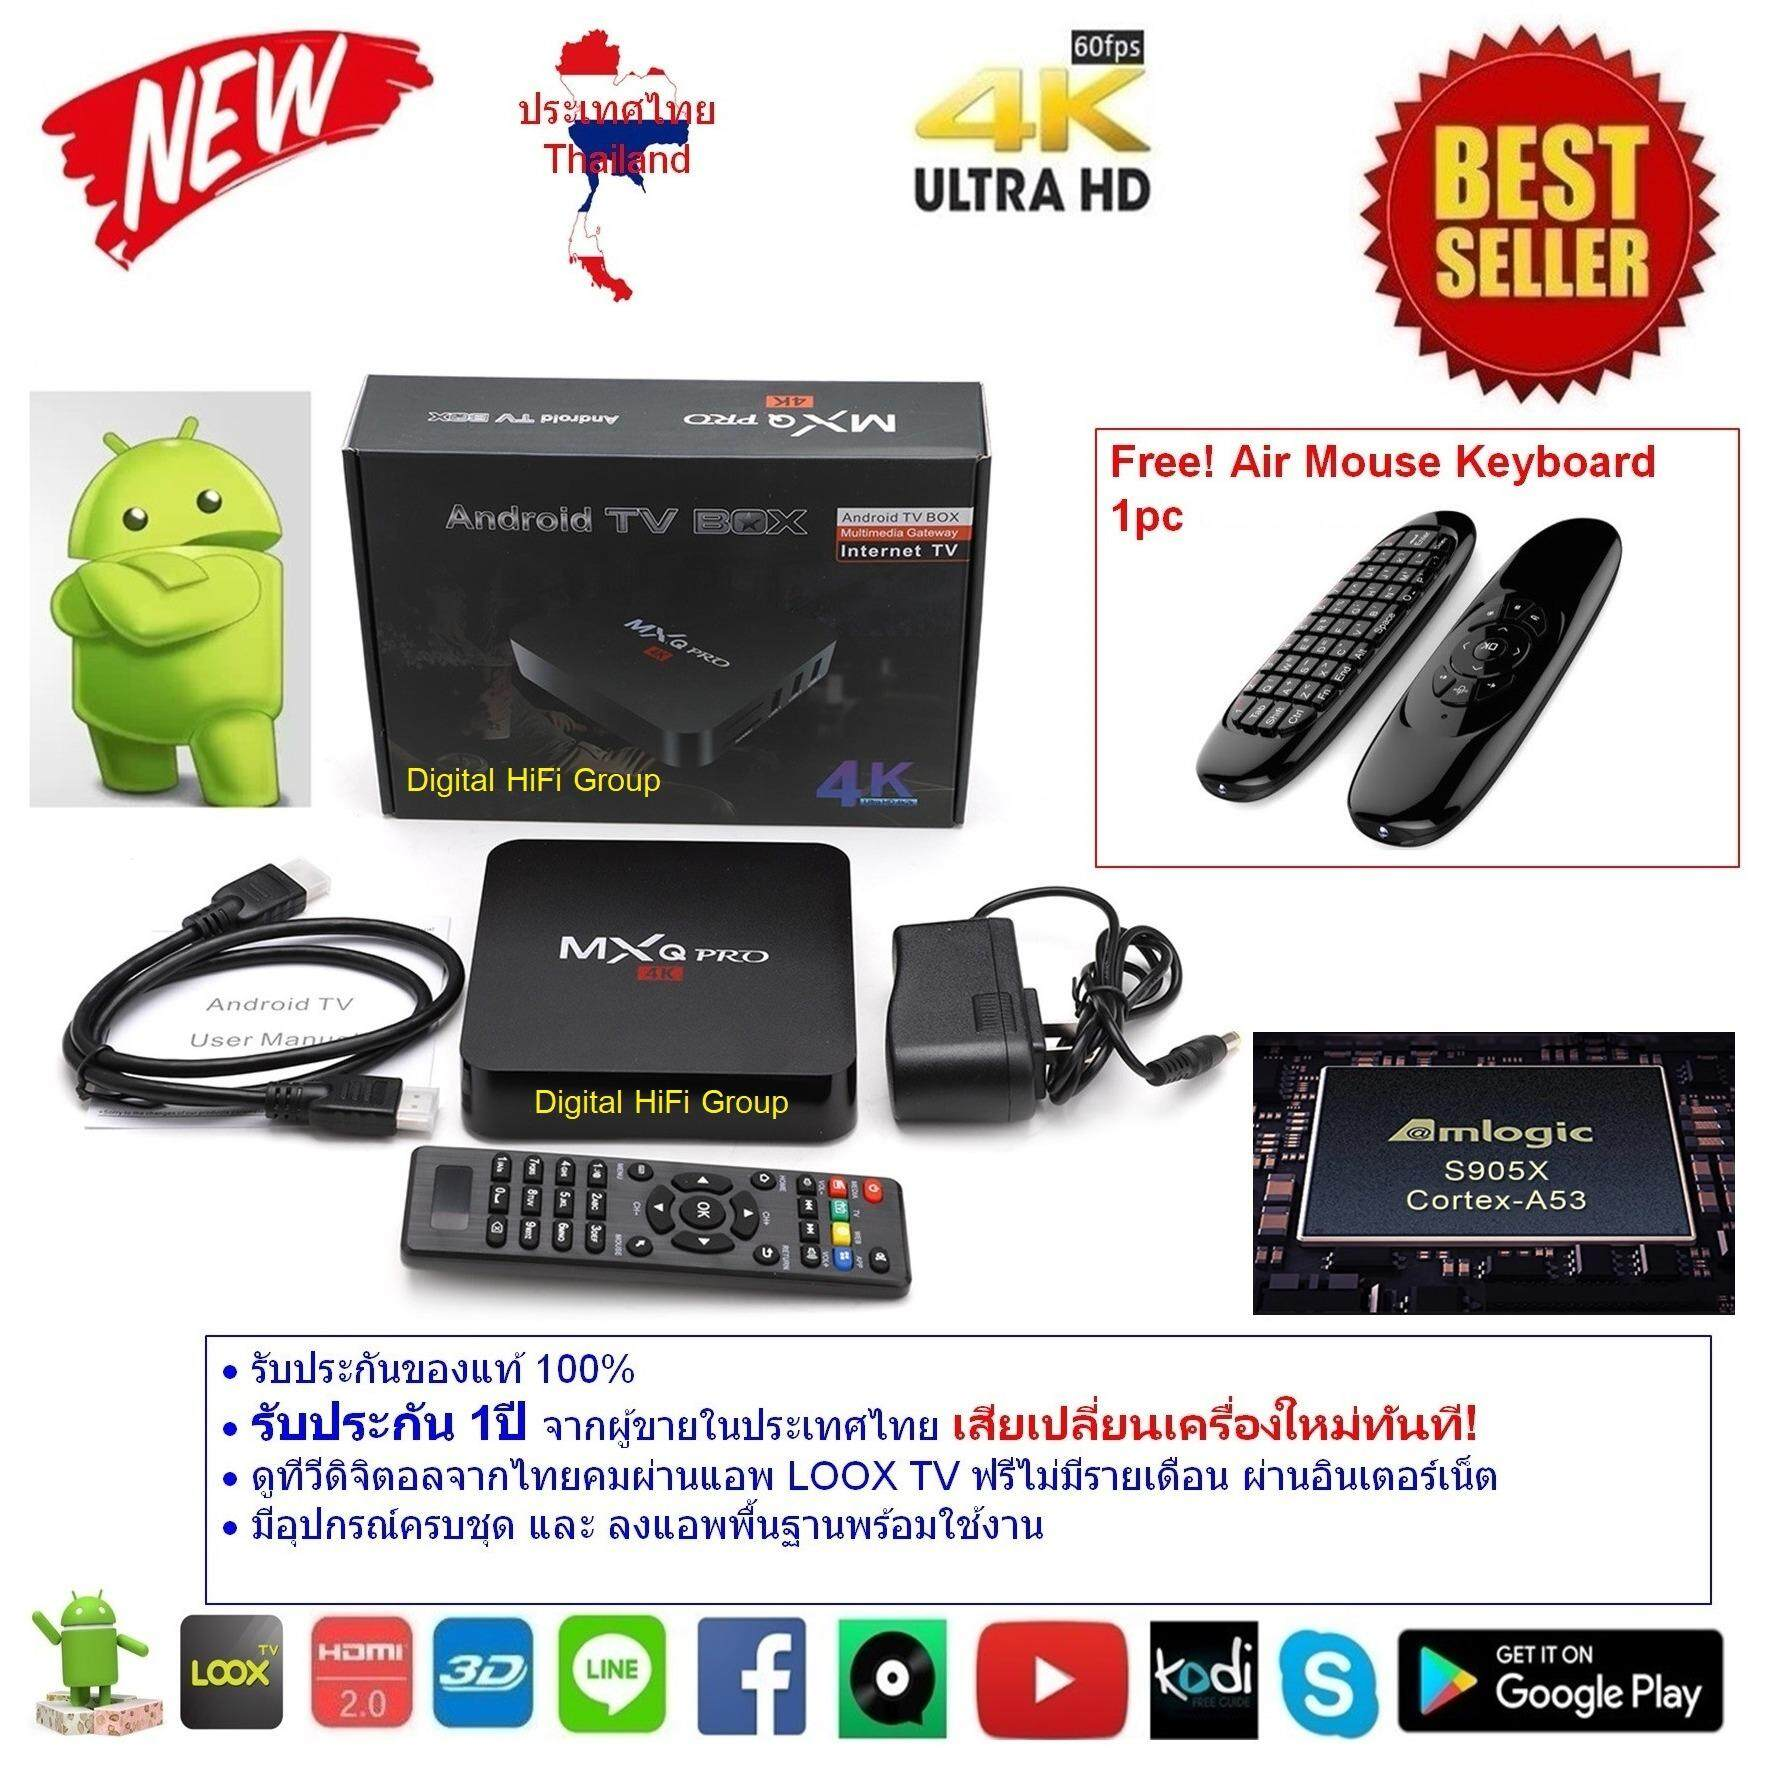 ทำบัตรเครดิตออนไลน์  ชัยนาท Android Smart Box MXQ Pro UHD 4K 64Bit Quad Core Ram 1GB DDR3 Android OS Marshmallow 6.0 ฟรี Air Mouse Keyboard